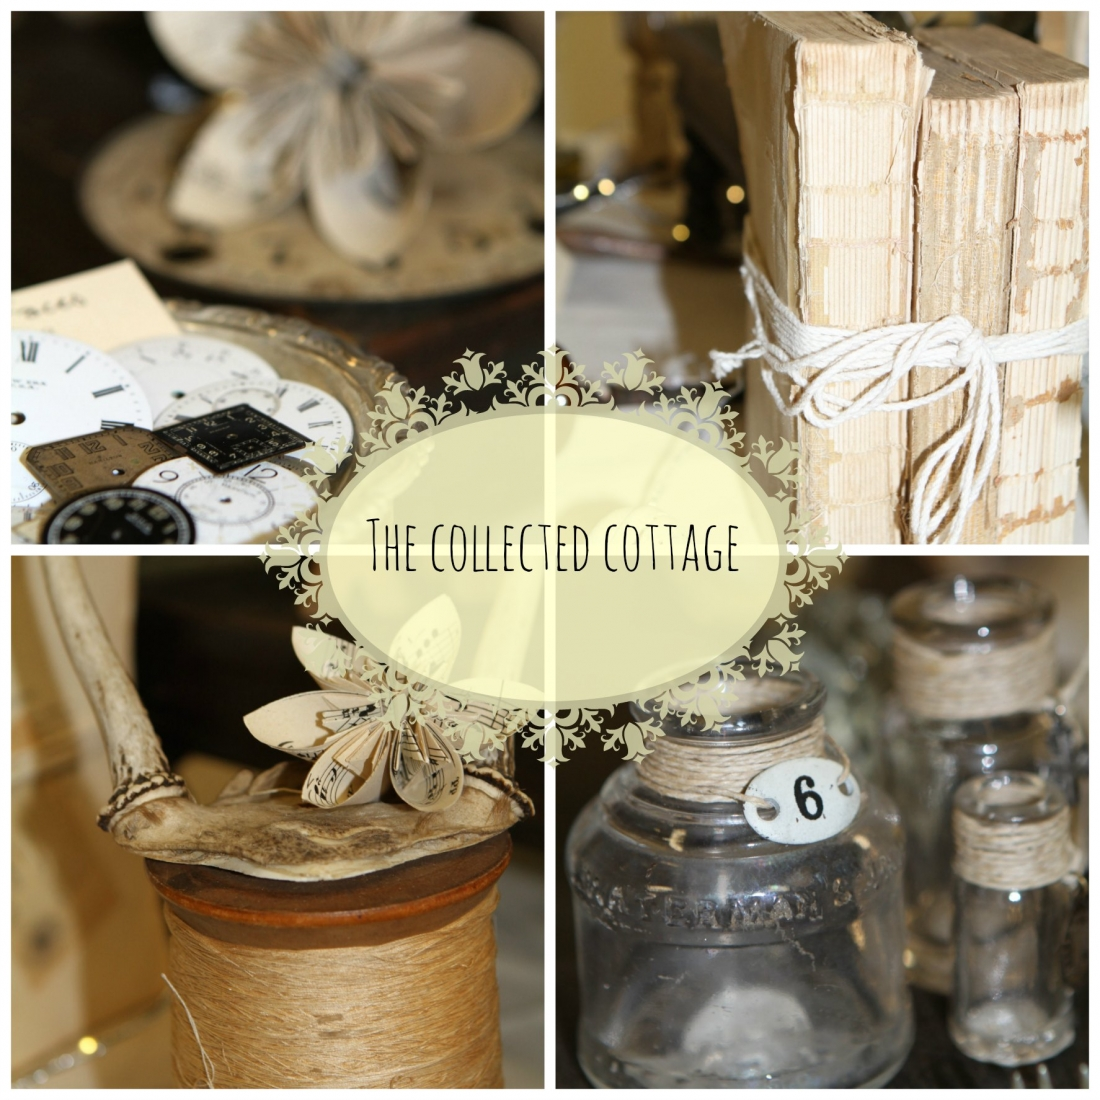 the collected cottage collage2.WEB.